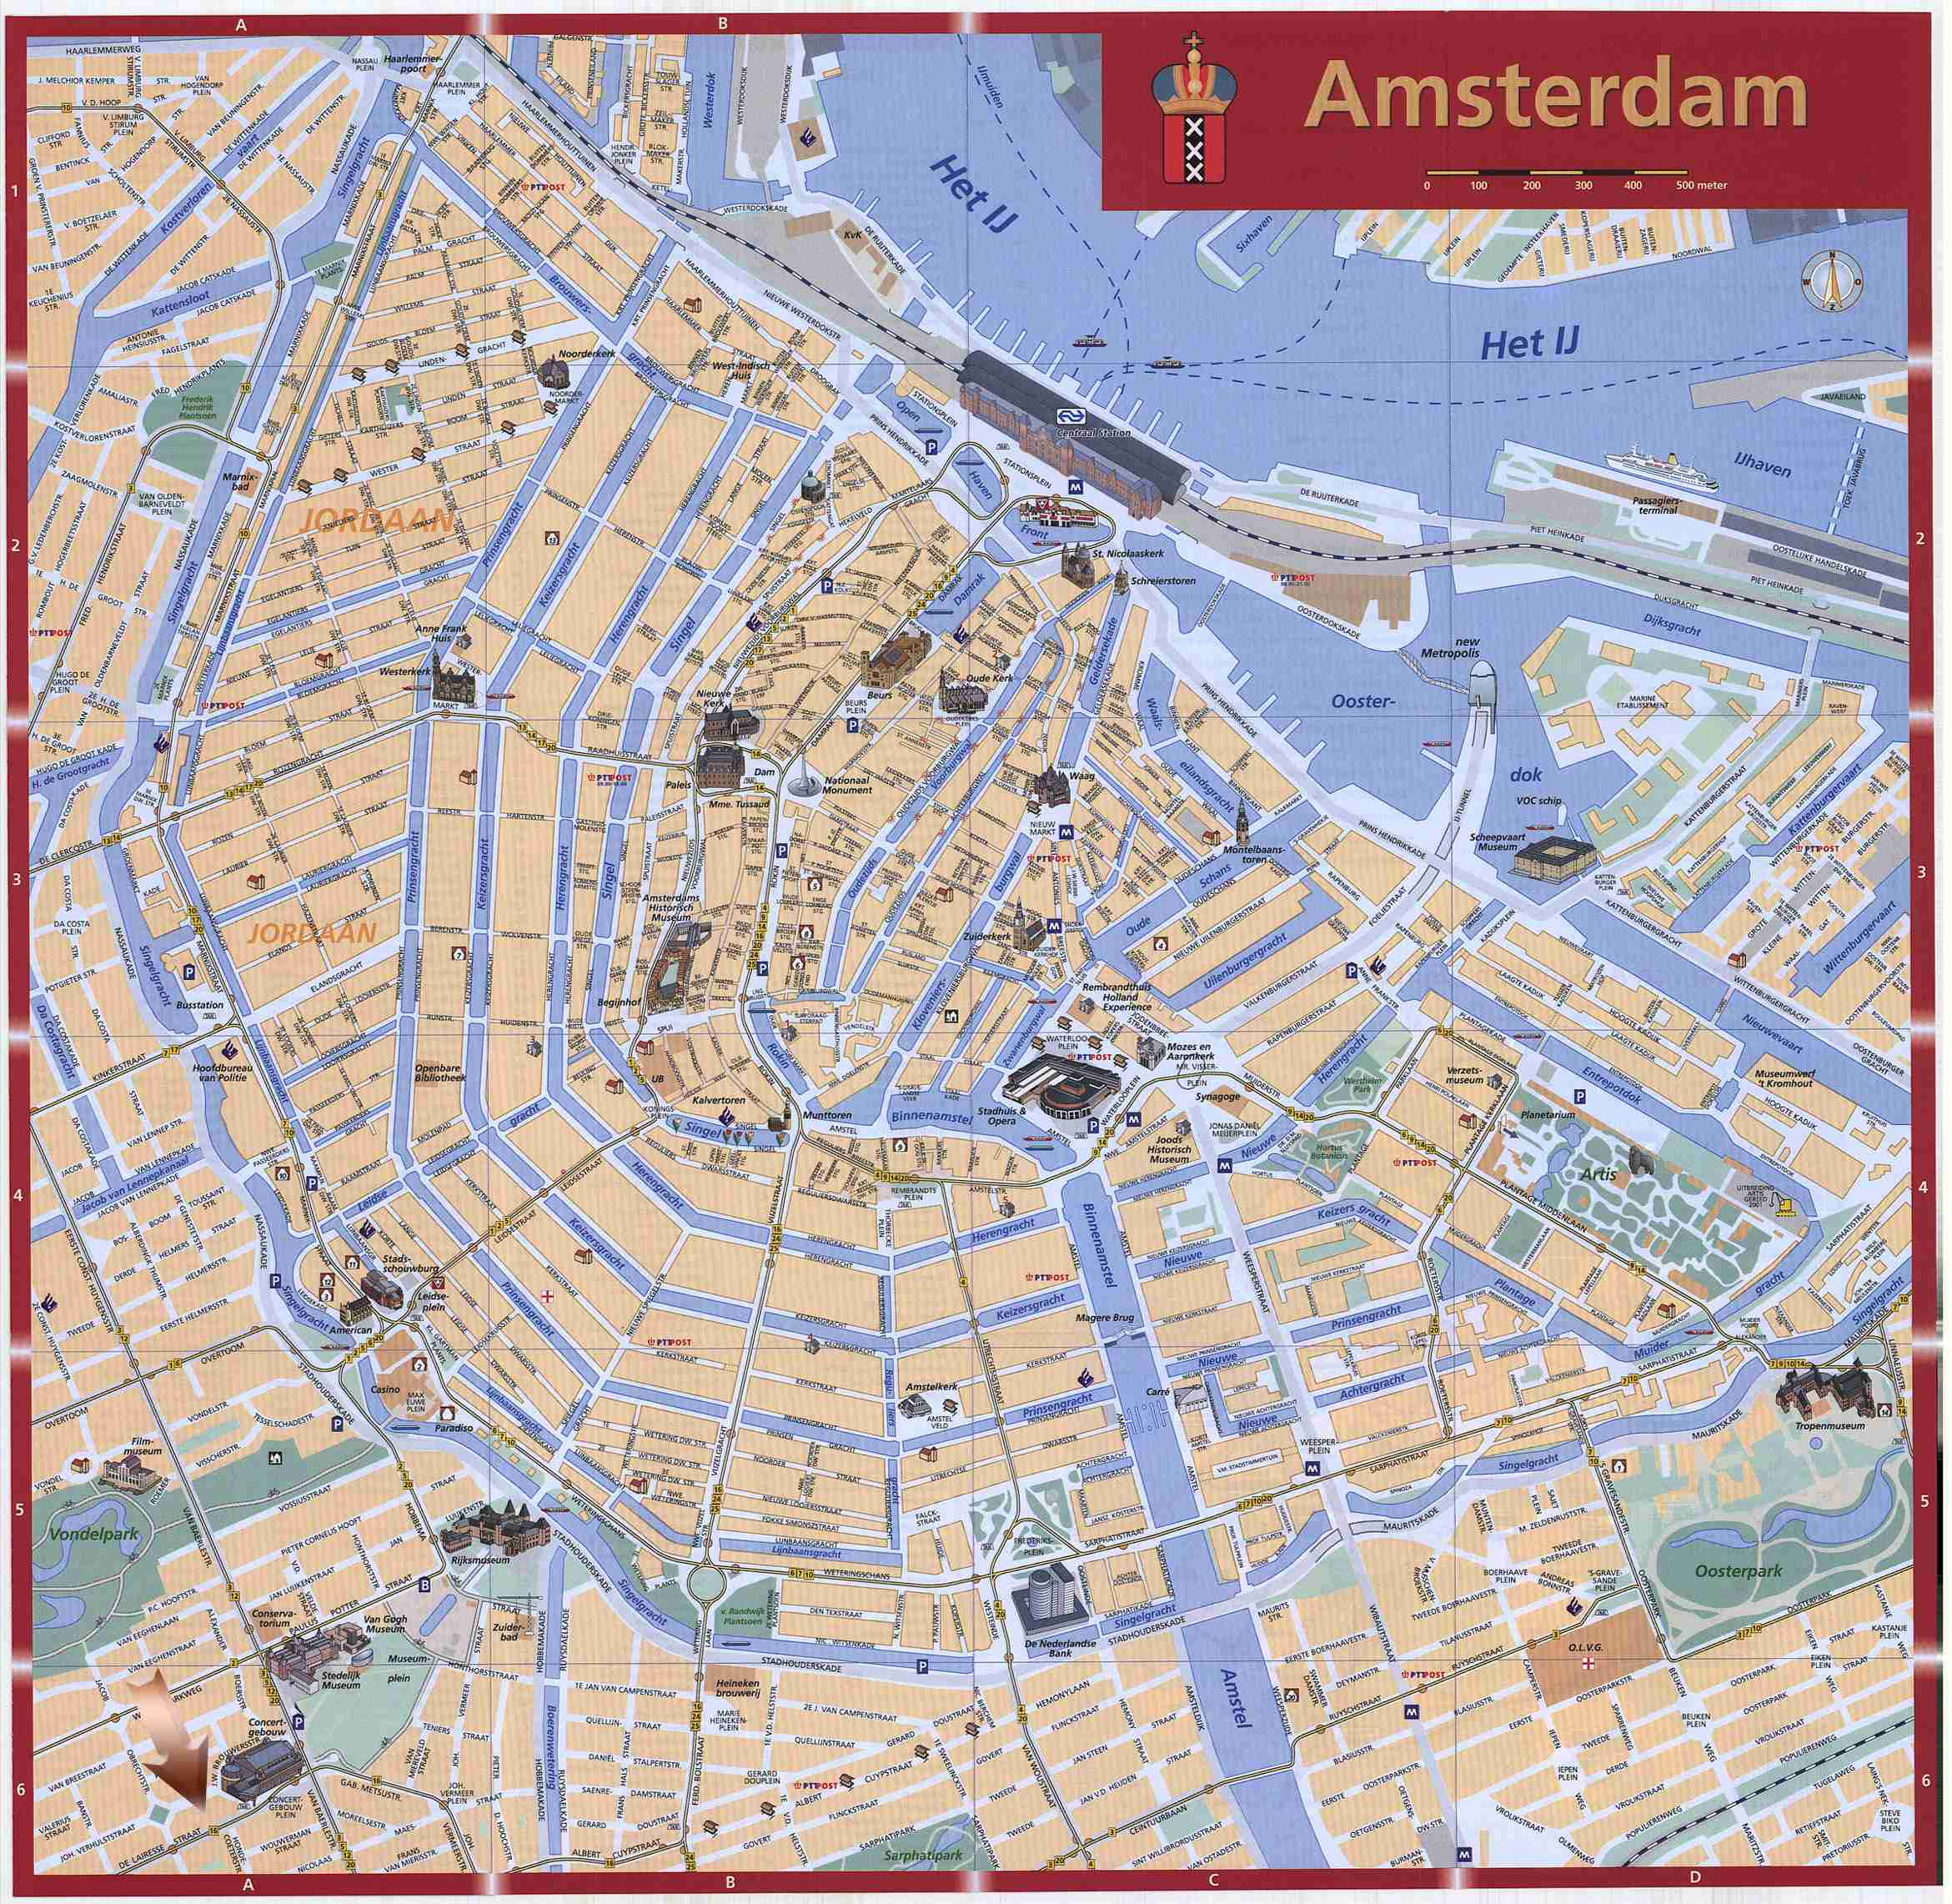 Plano de Amsterdam Completo plano de Amsterdam con los principales atractivos tursticos que visitar en la ciudad.